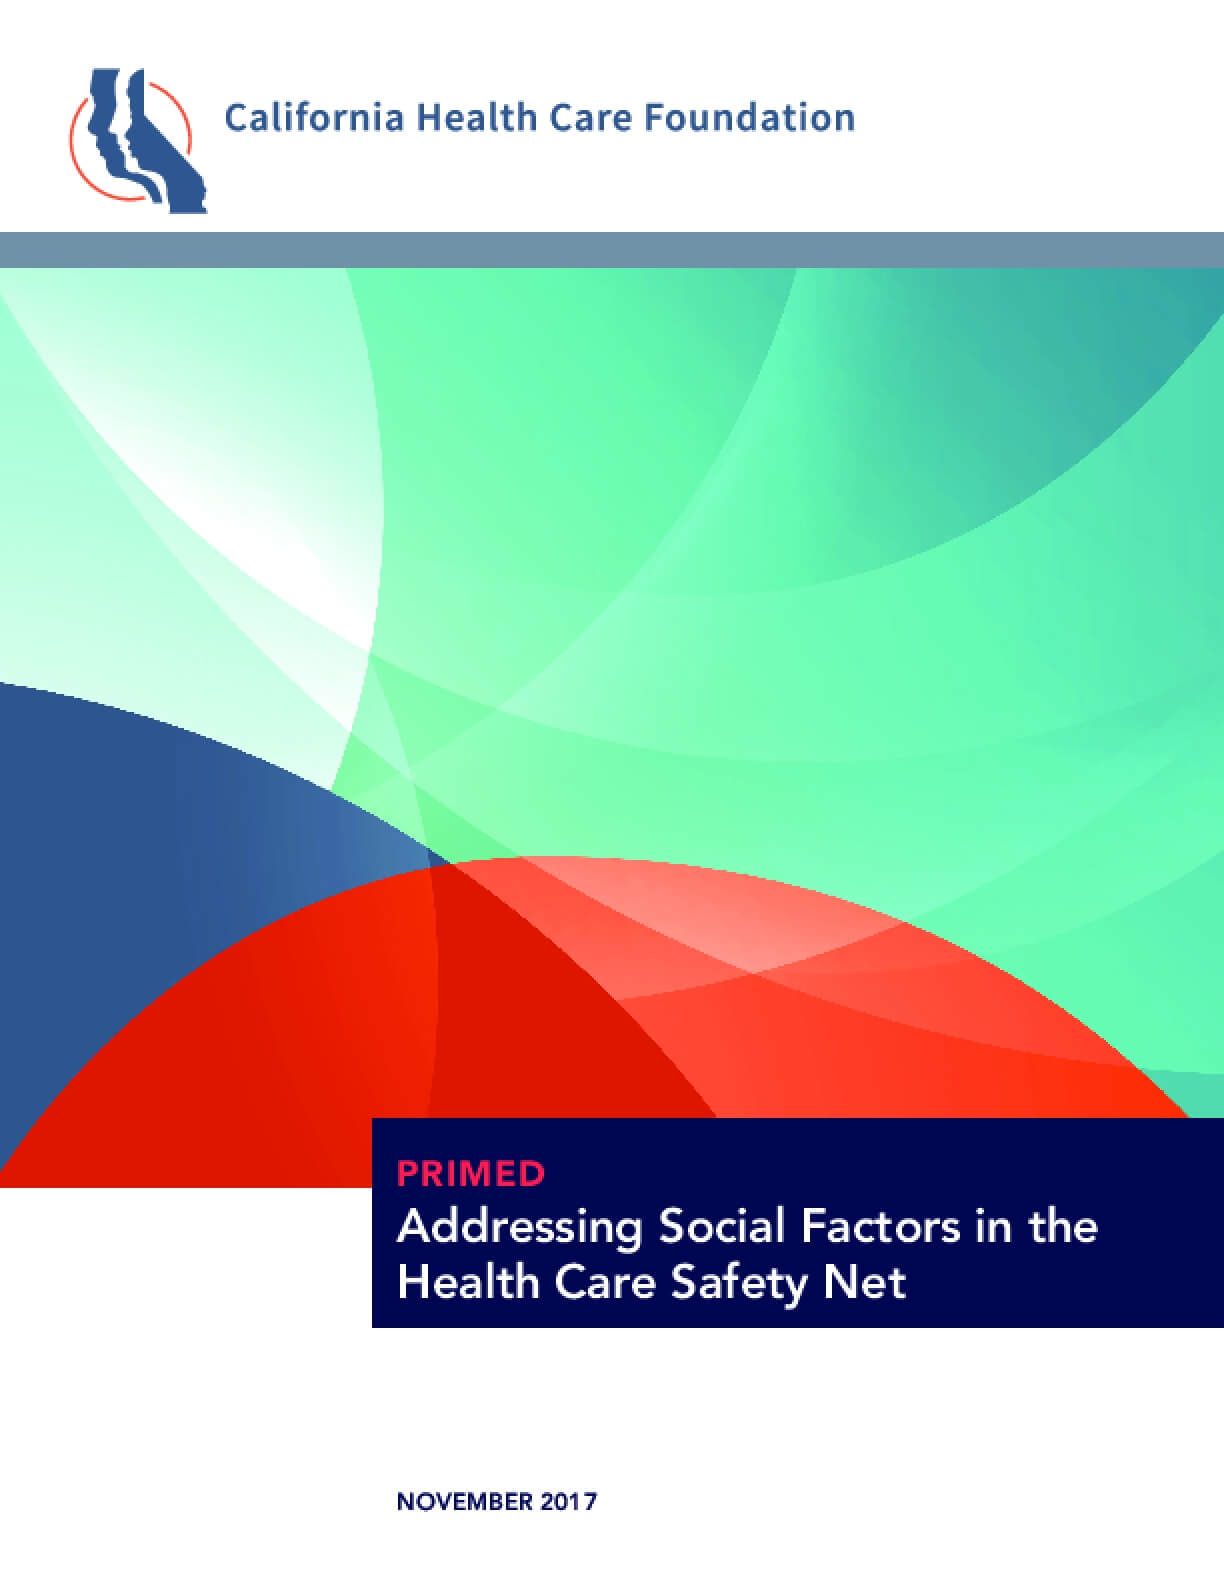 Primed: Addressing Social Factors in the Health Care Safety Net